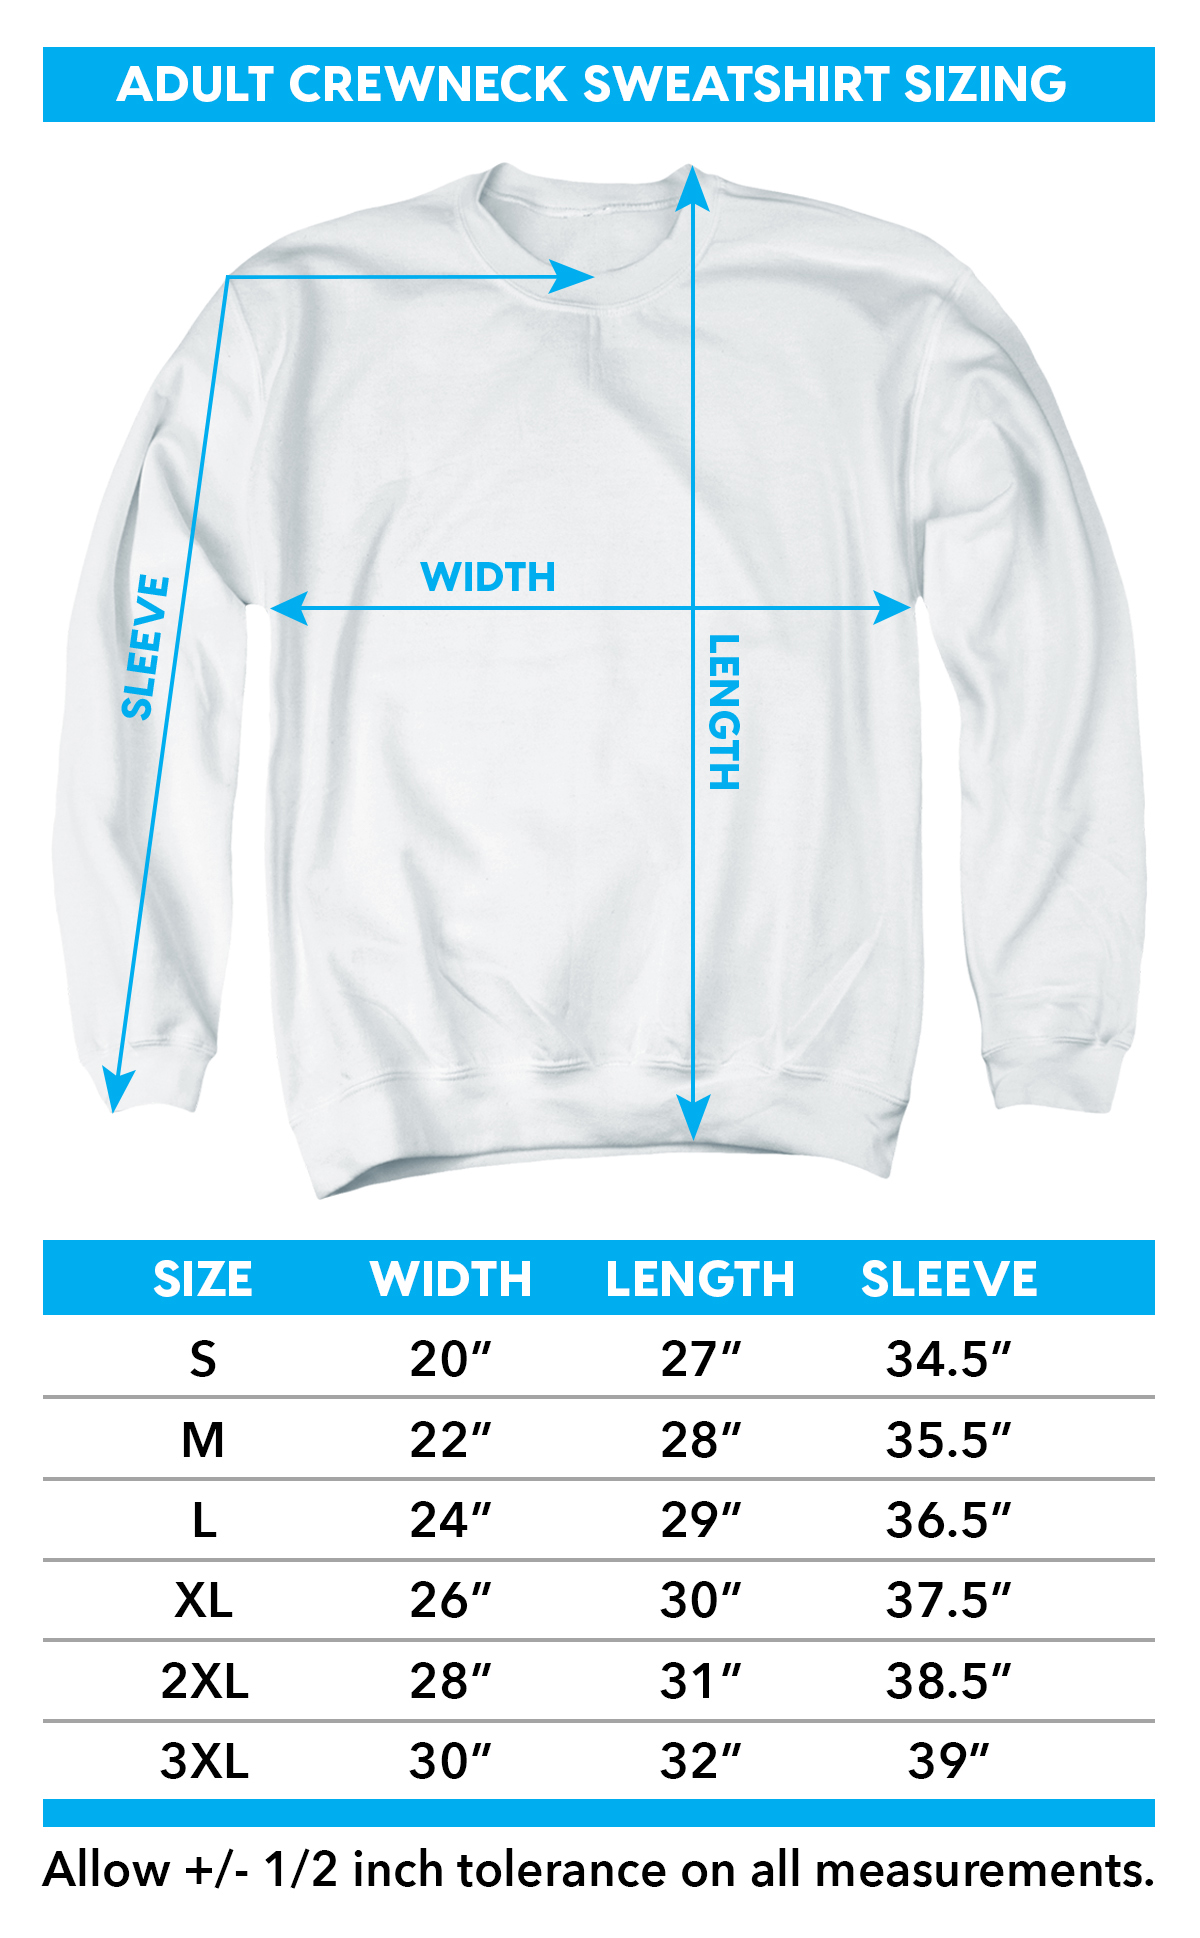 Sizing chart for the Ratt Robo Ratt crewneck sweatshirt